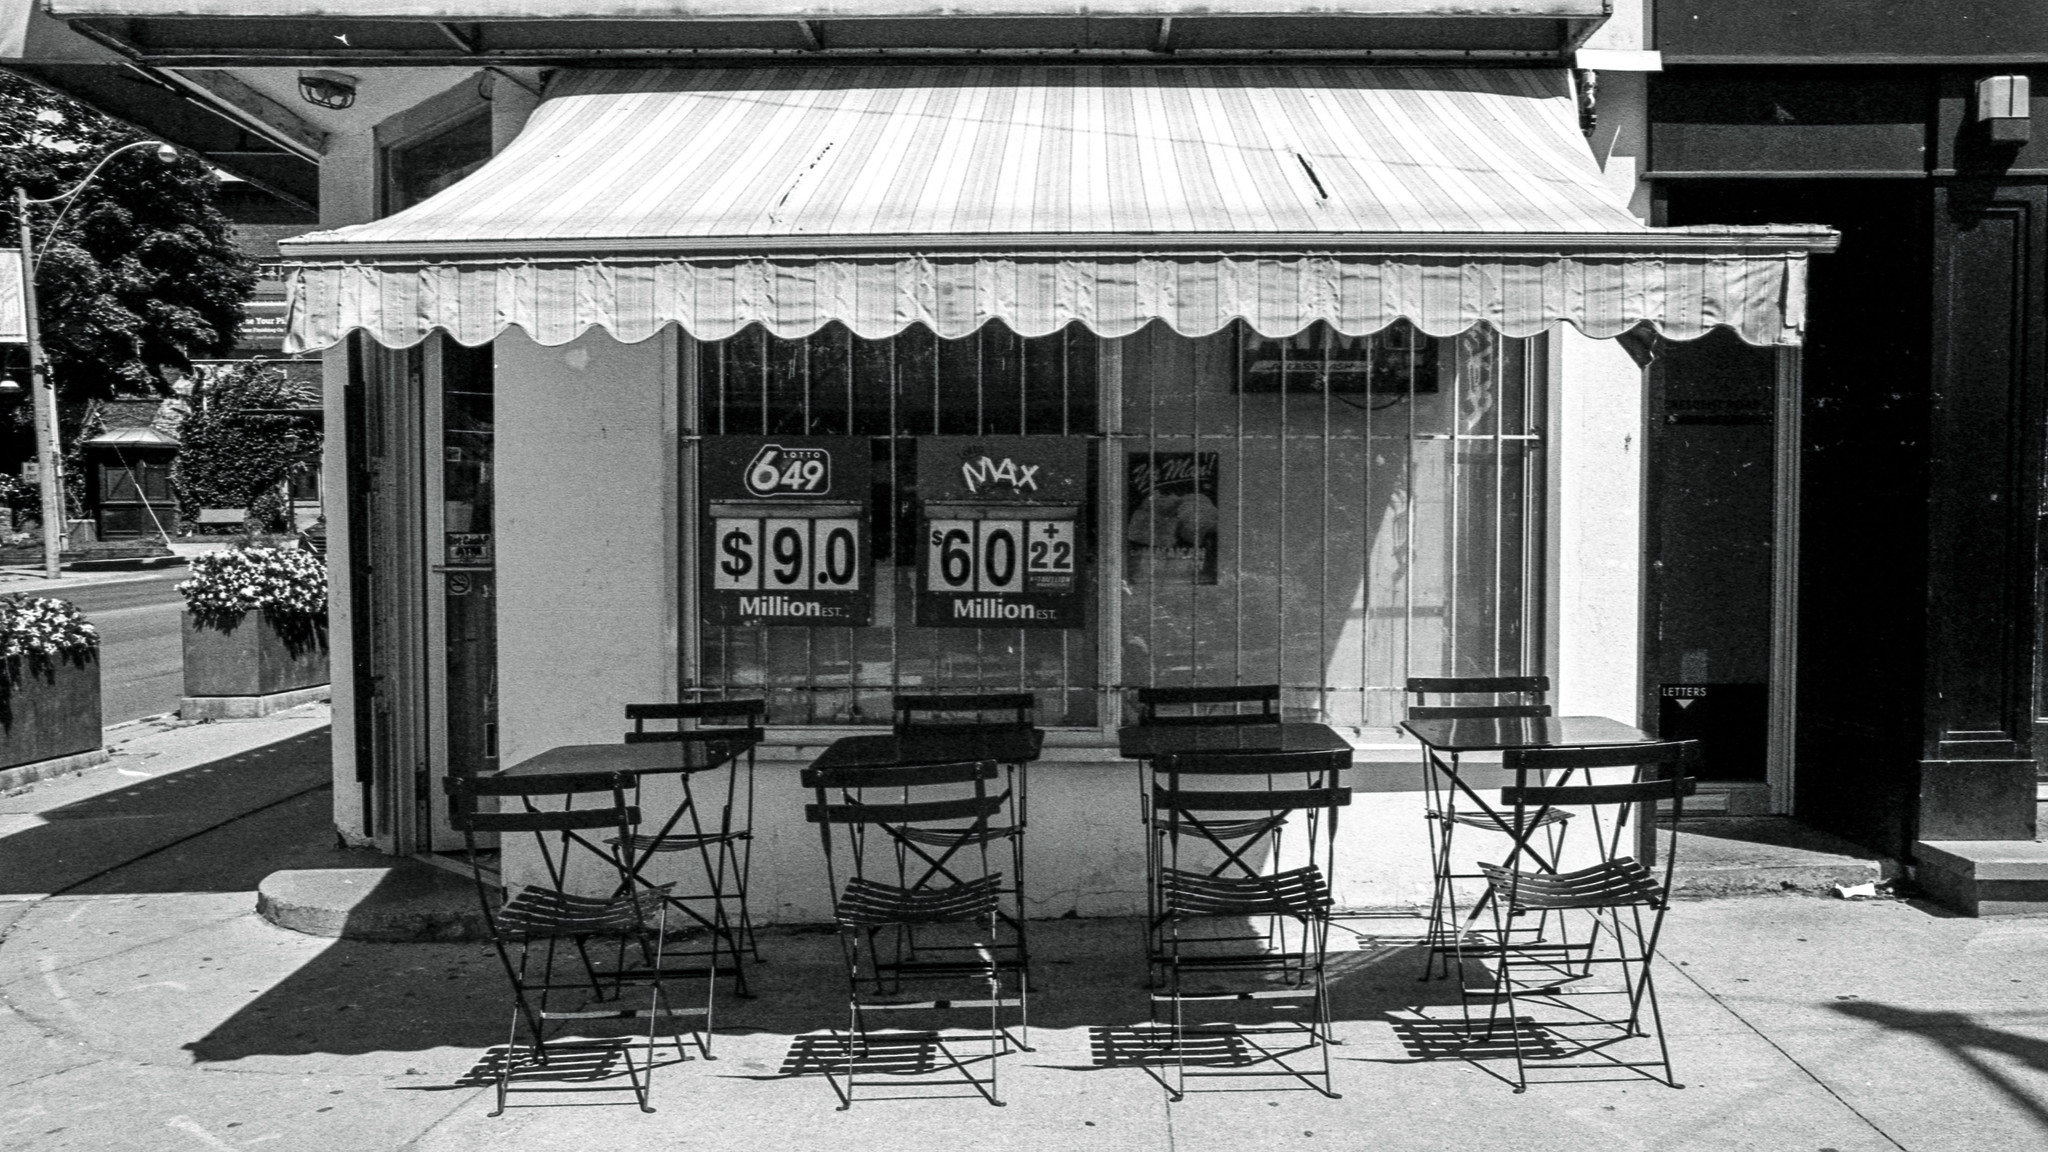 Seats in the Shade, Pentax KM, SMC Pentax K 28 F3.5 lens, Kosmo Mono 100